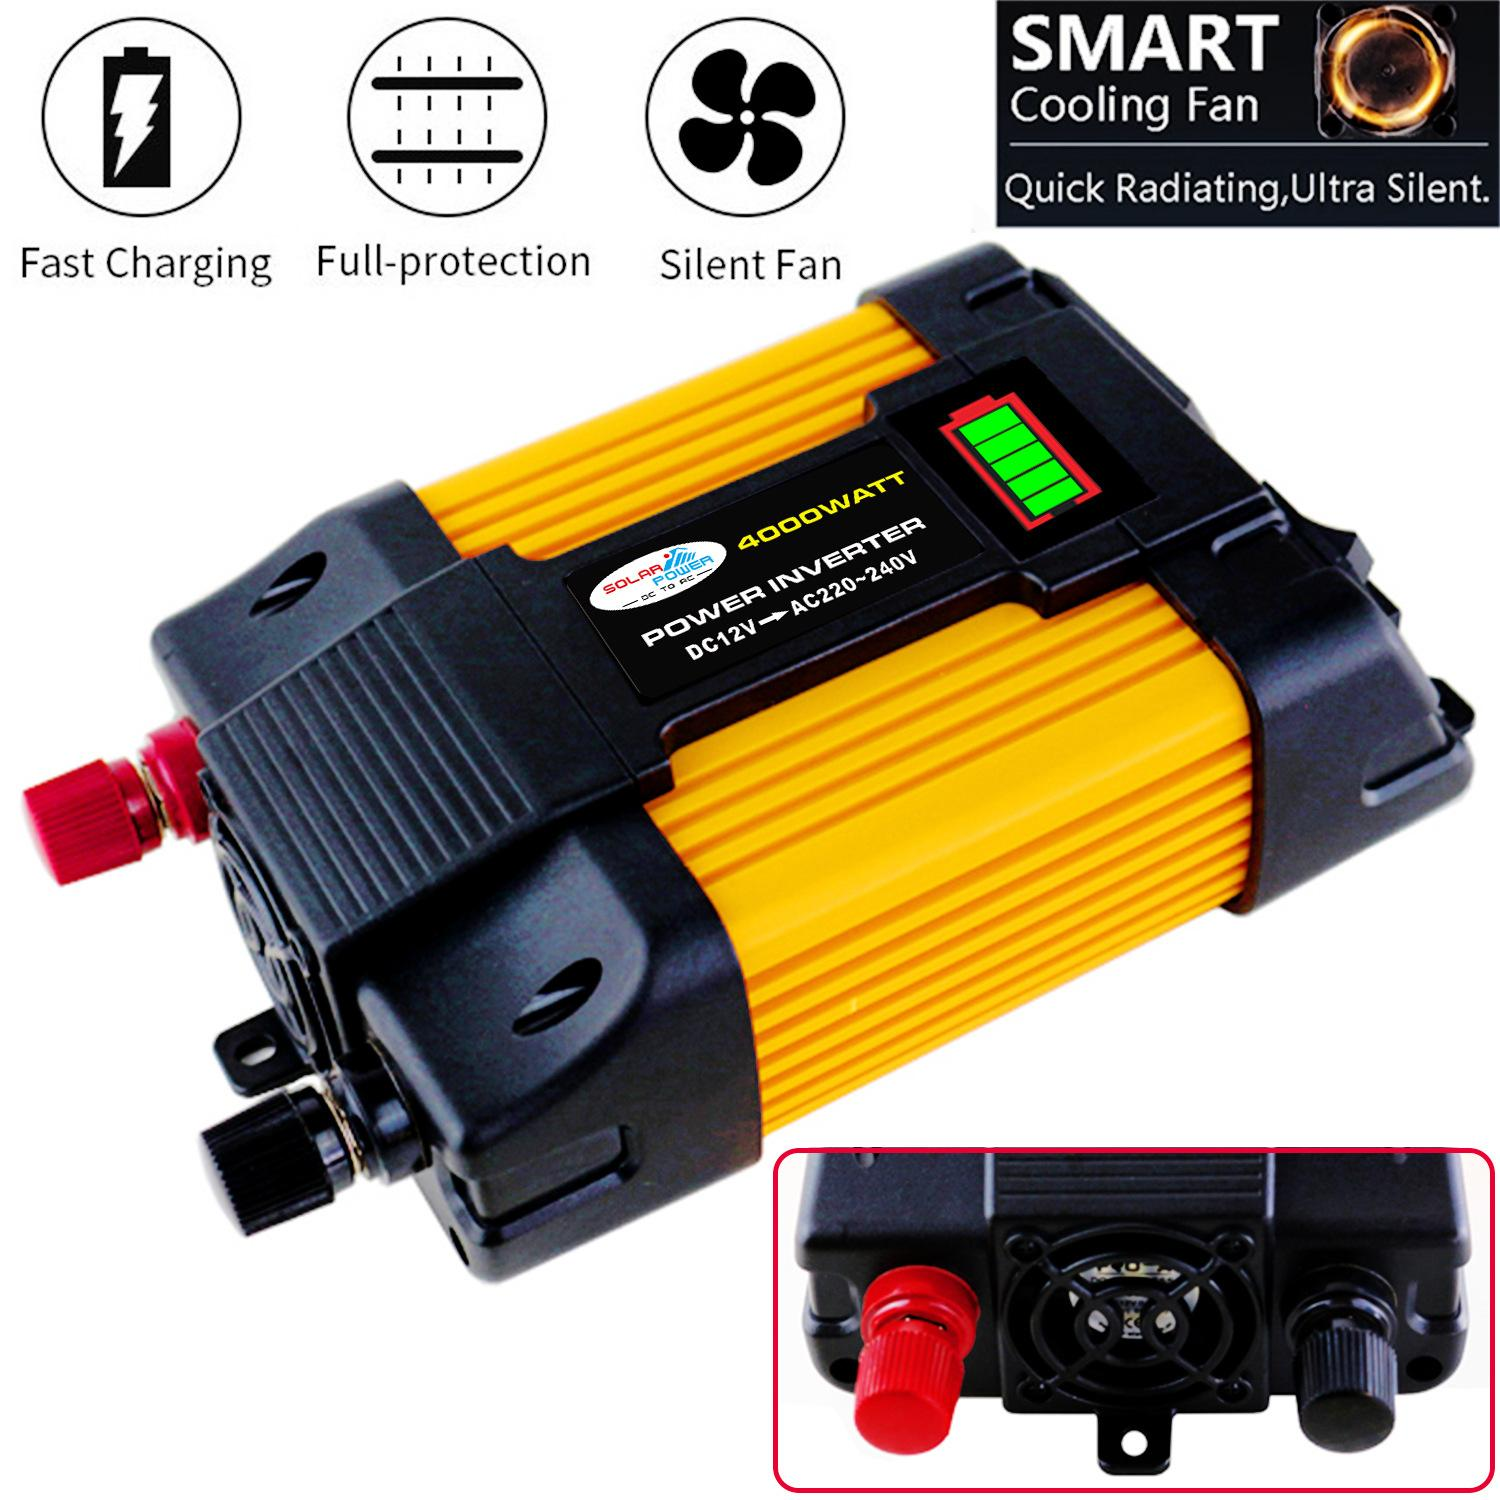 4000W/6000W DC12V to AC110/220V Car Switching Inverter LED Display Dual USB Power Converter Adapter Voltage Transformer